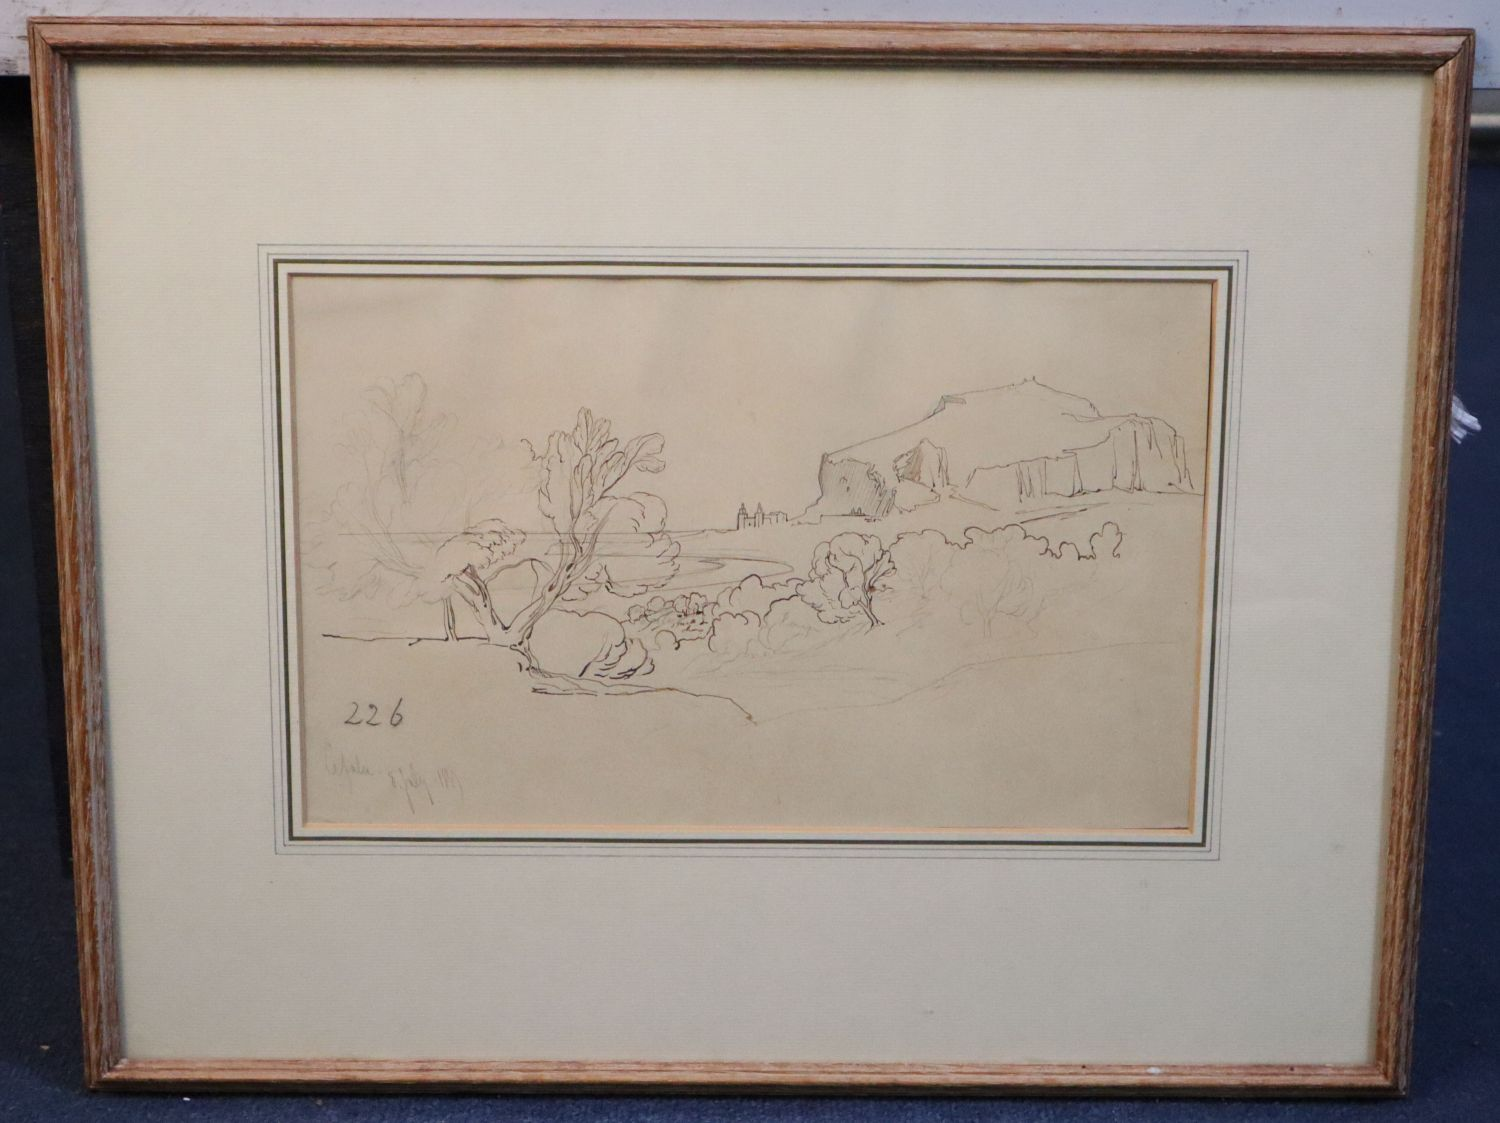 Edward Lear (1812-1888)ink and pencil on buff paper'Cefalu' inscribed and dated 8th July 1847 and - Image 2 of 4